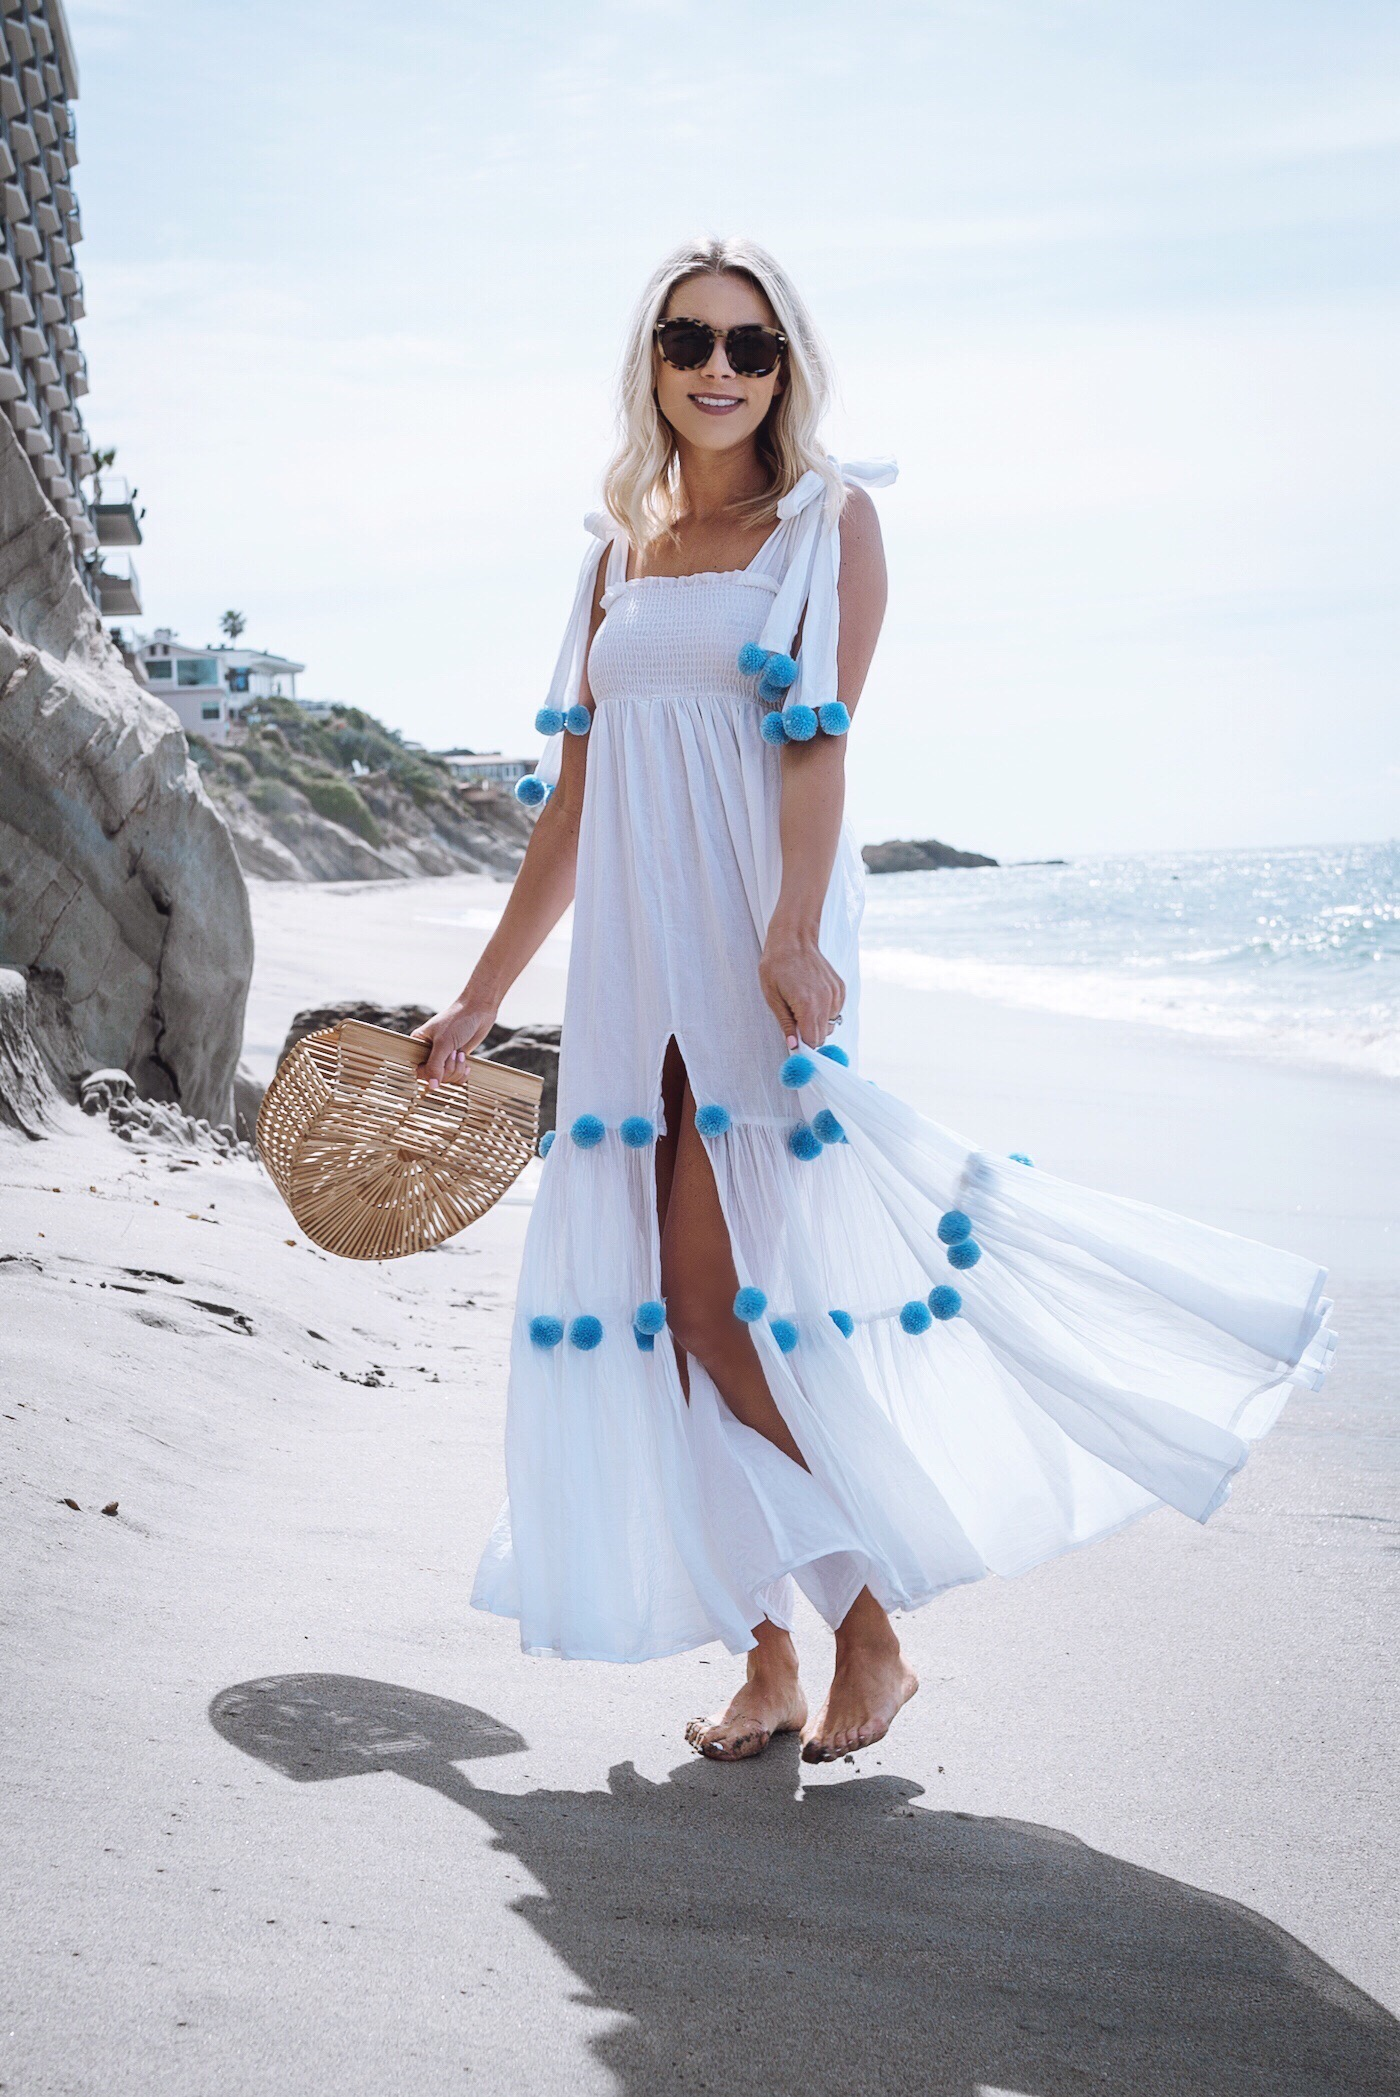 65cc3eb9f How cute is this pom pom maxi dress ! When I first came across it I knew it  would be perfect for some of the tropical beach vacations I have coming ...